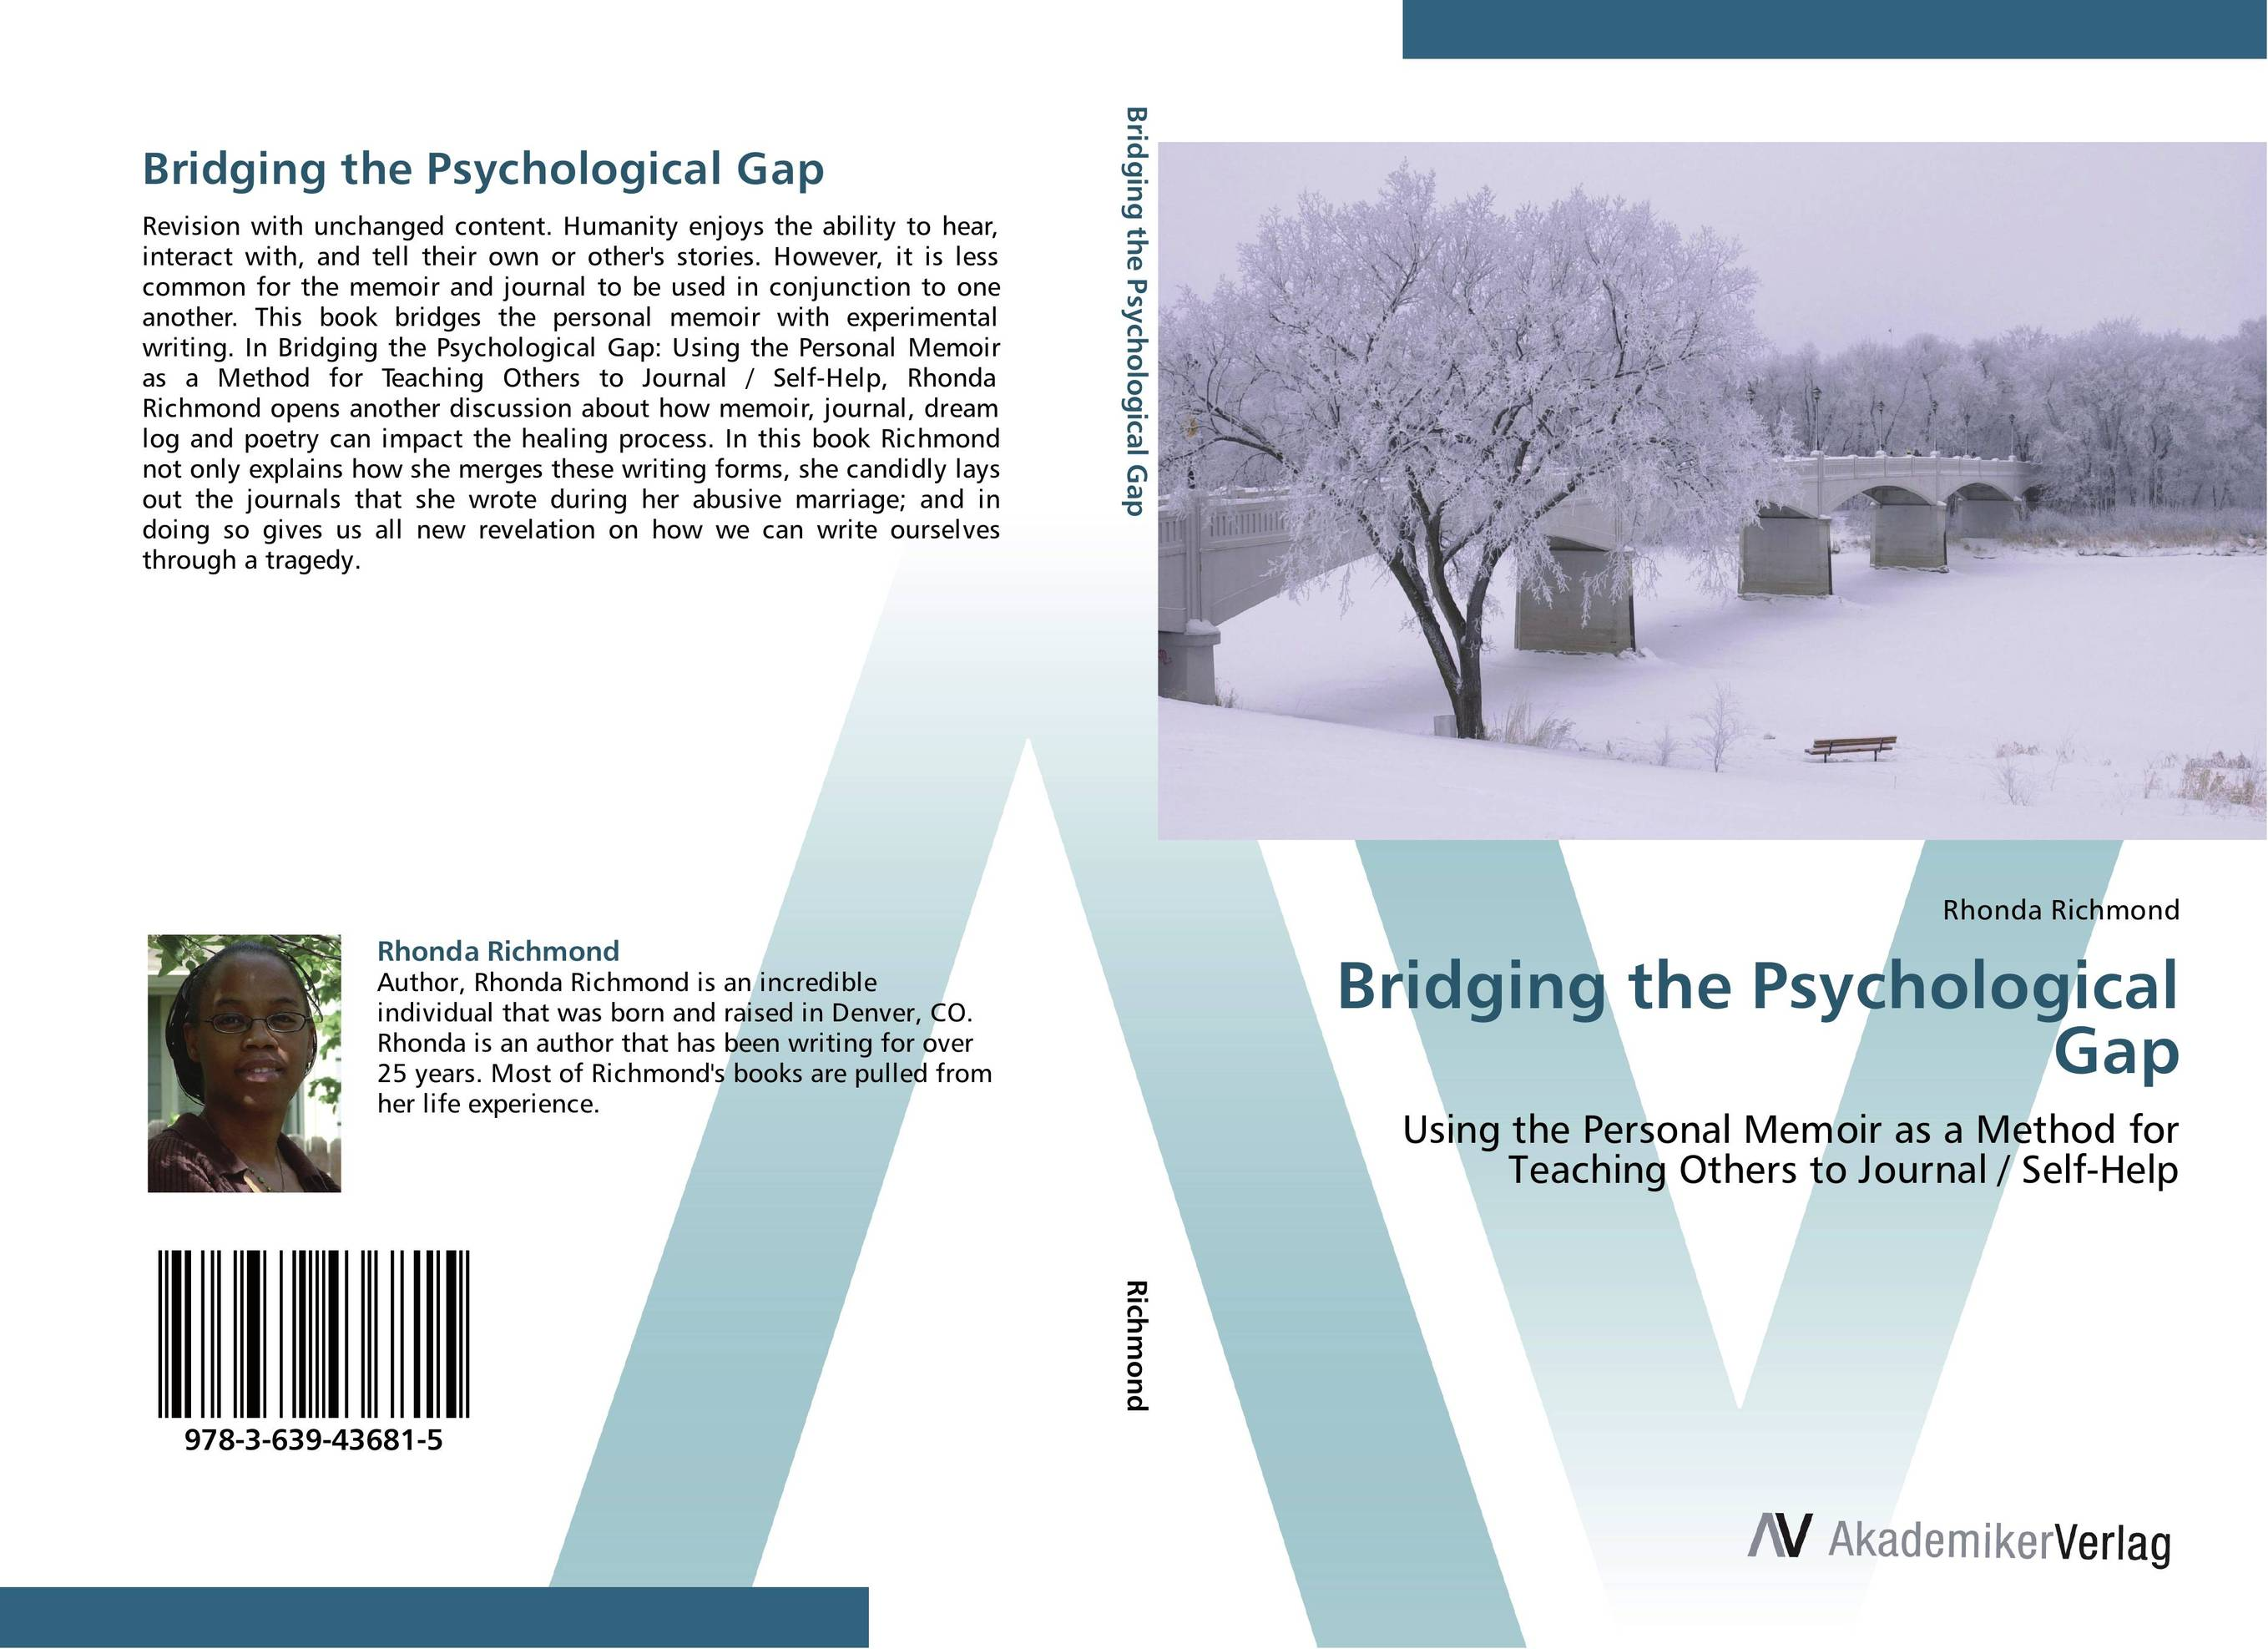 Bridging the Psychological Gap linda myers the power of memoir how to write your healing story